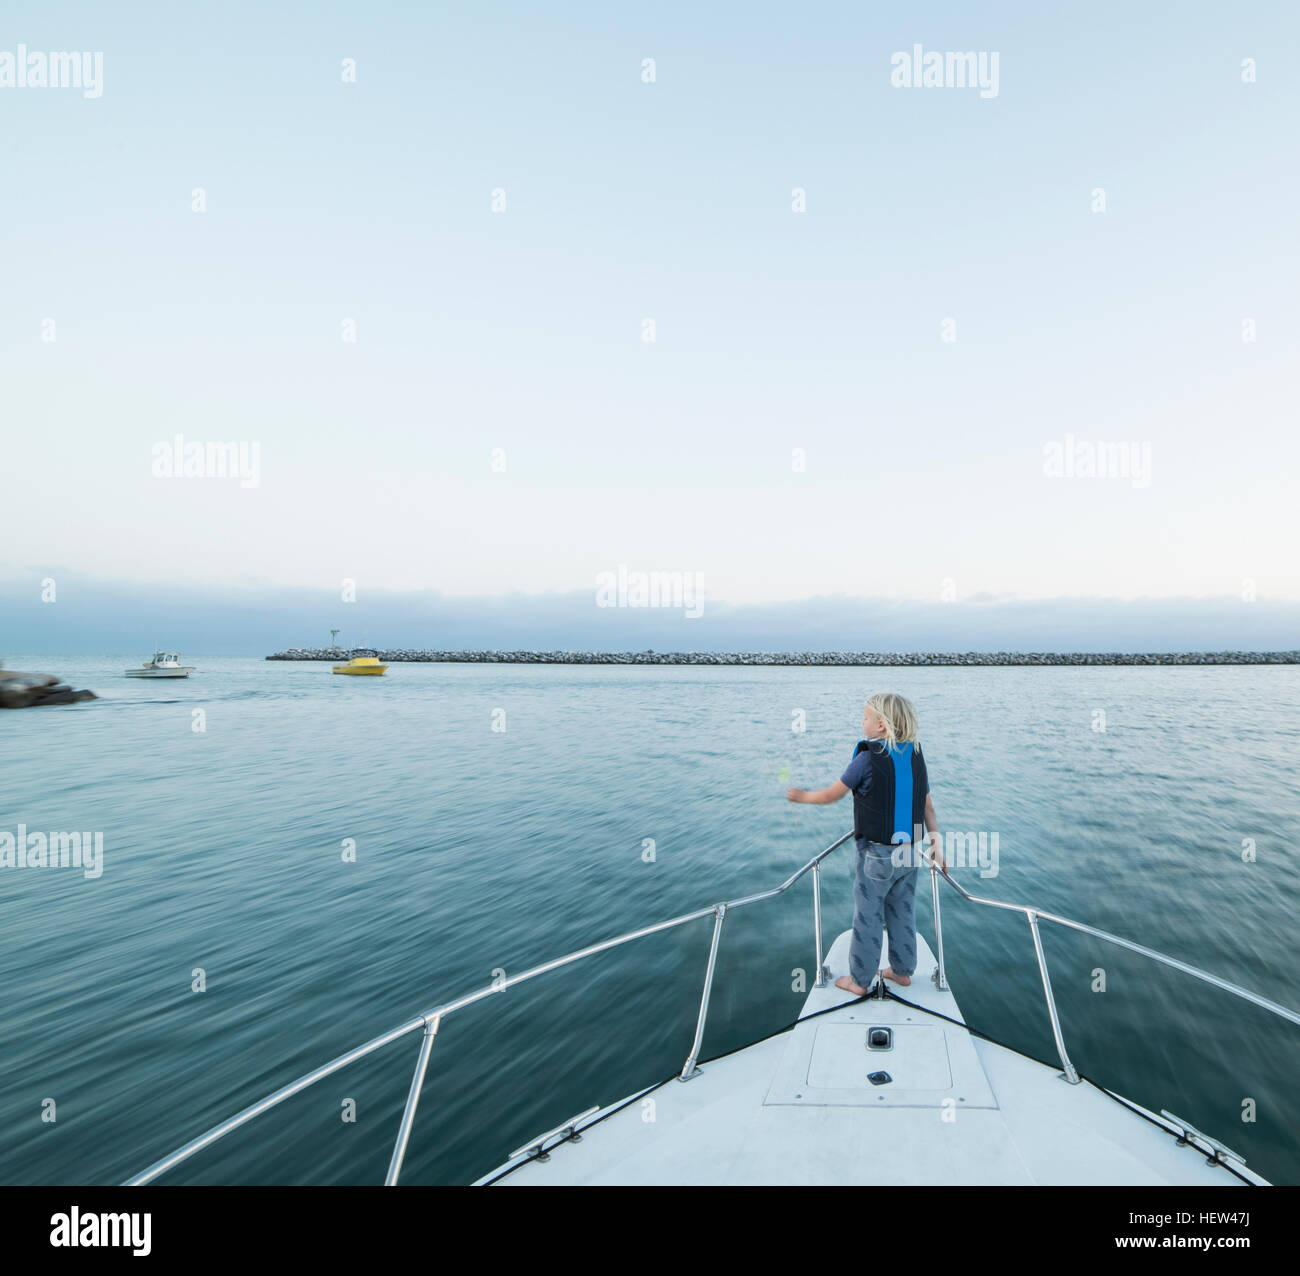 Rear view of boy on bow of boat, Dana Point, California, USA - Stock Image